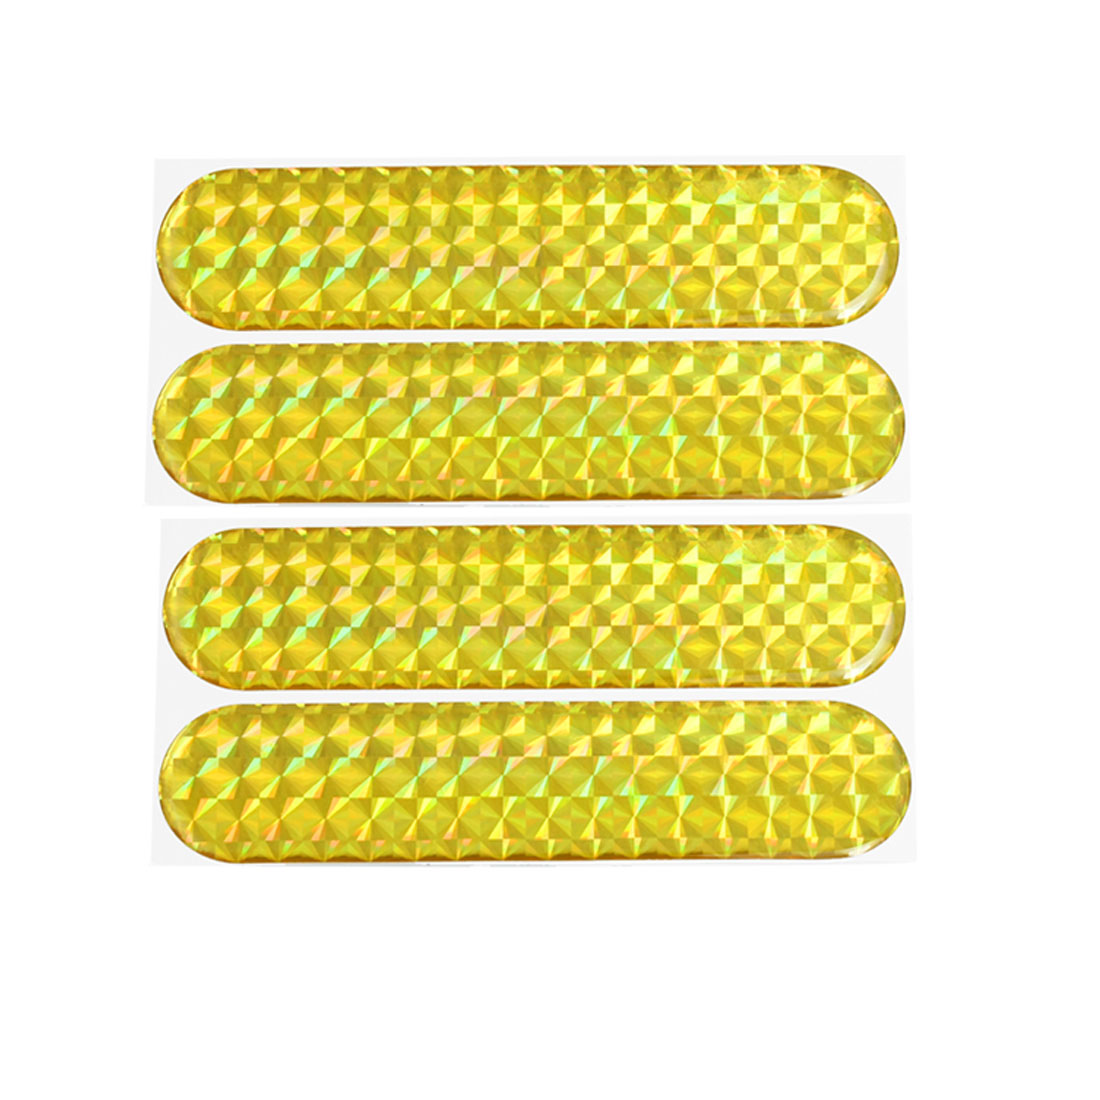 4 Pcs Self Adhesive Plastic Yellow Reflective Sticker for Auto